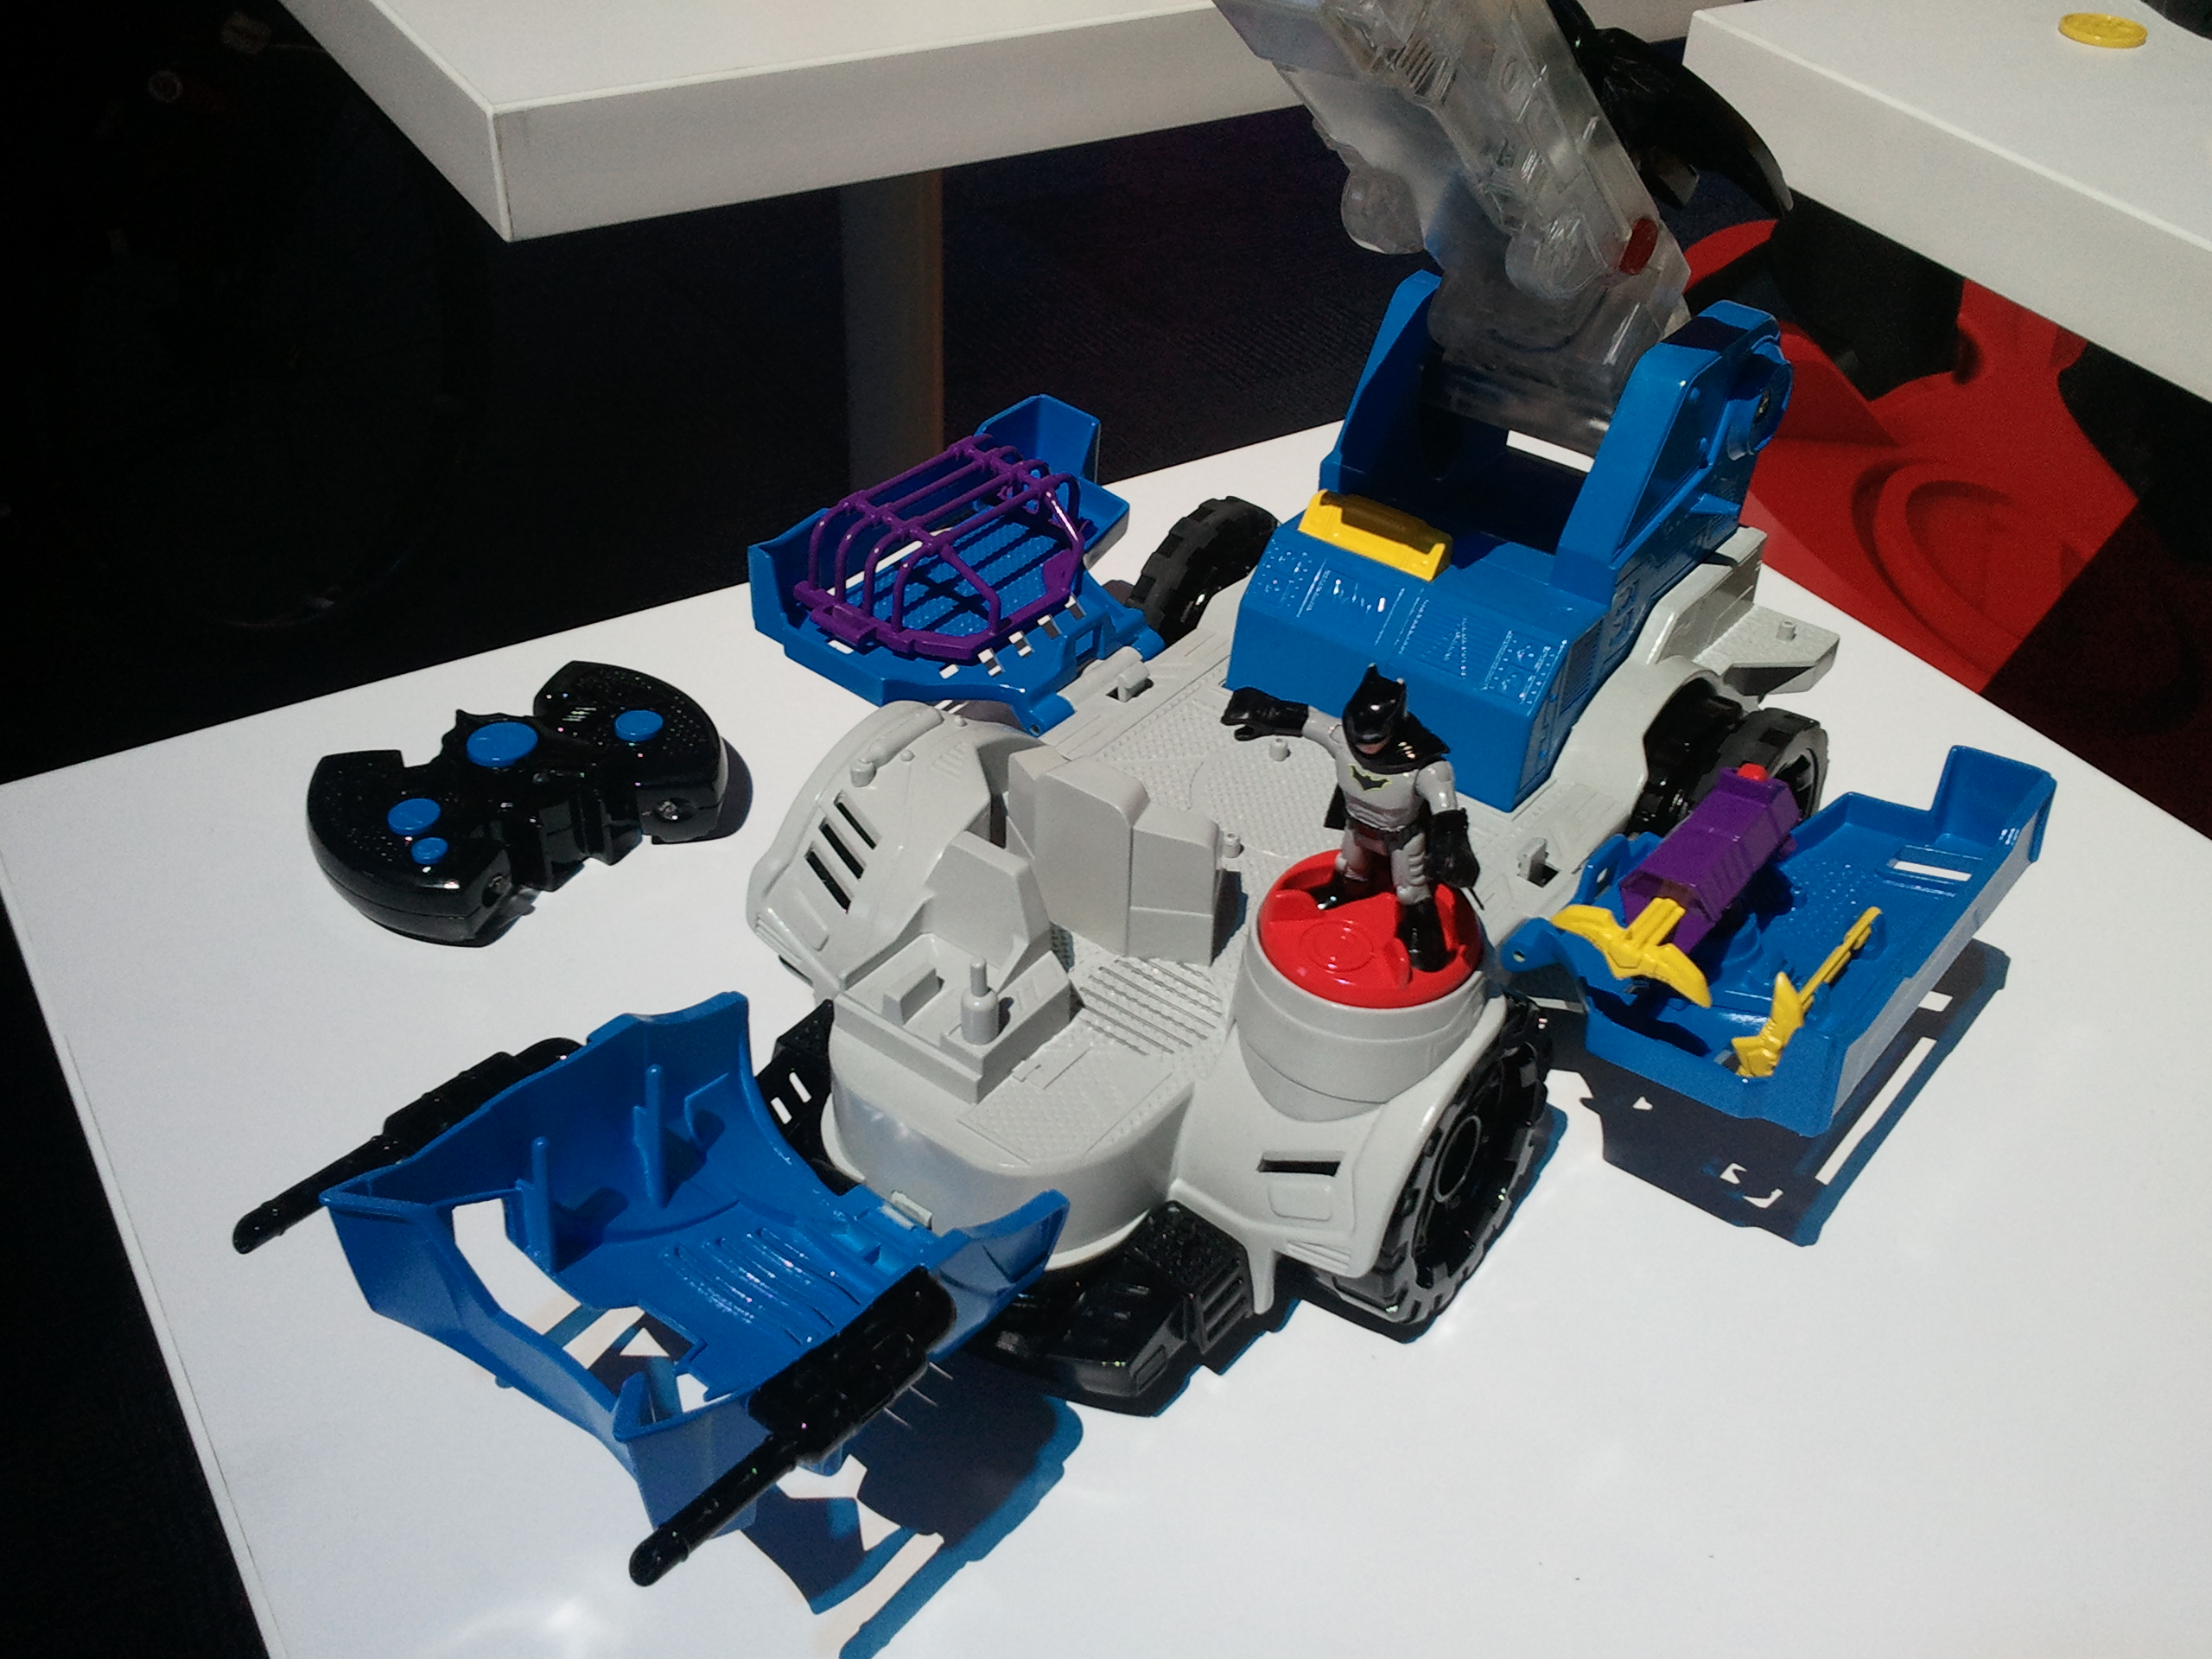 Epic  remote control projectiles jail and Batman figure Remote steers Mobile Command Center forward reverse turn u transforms from vehicle to playset